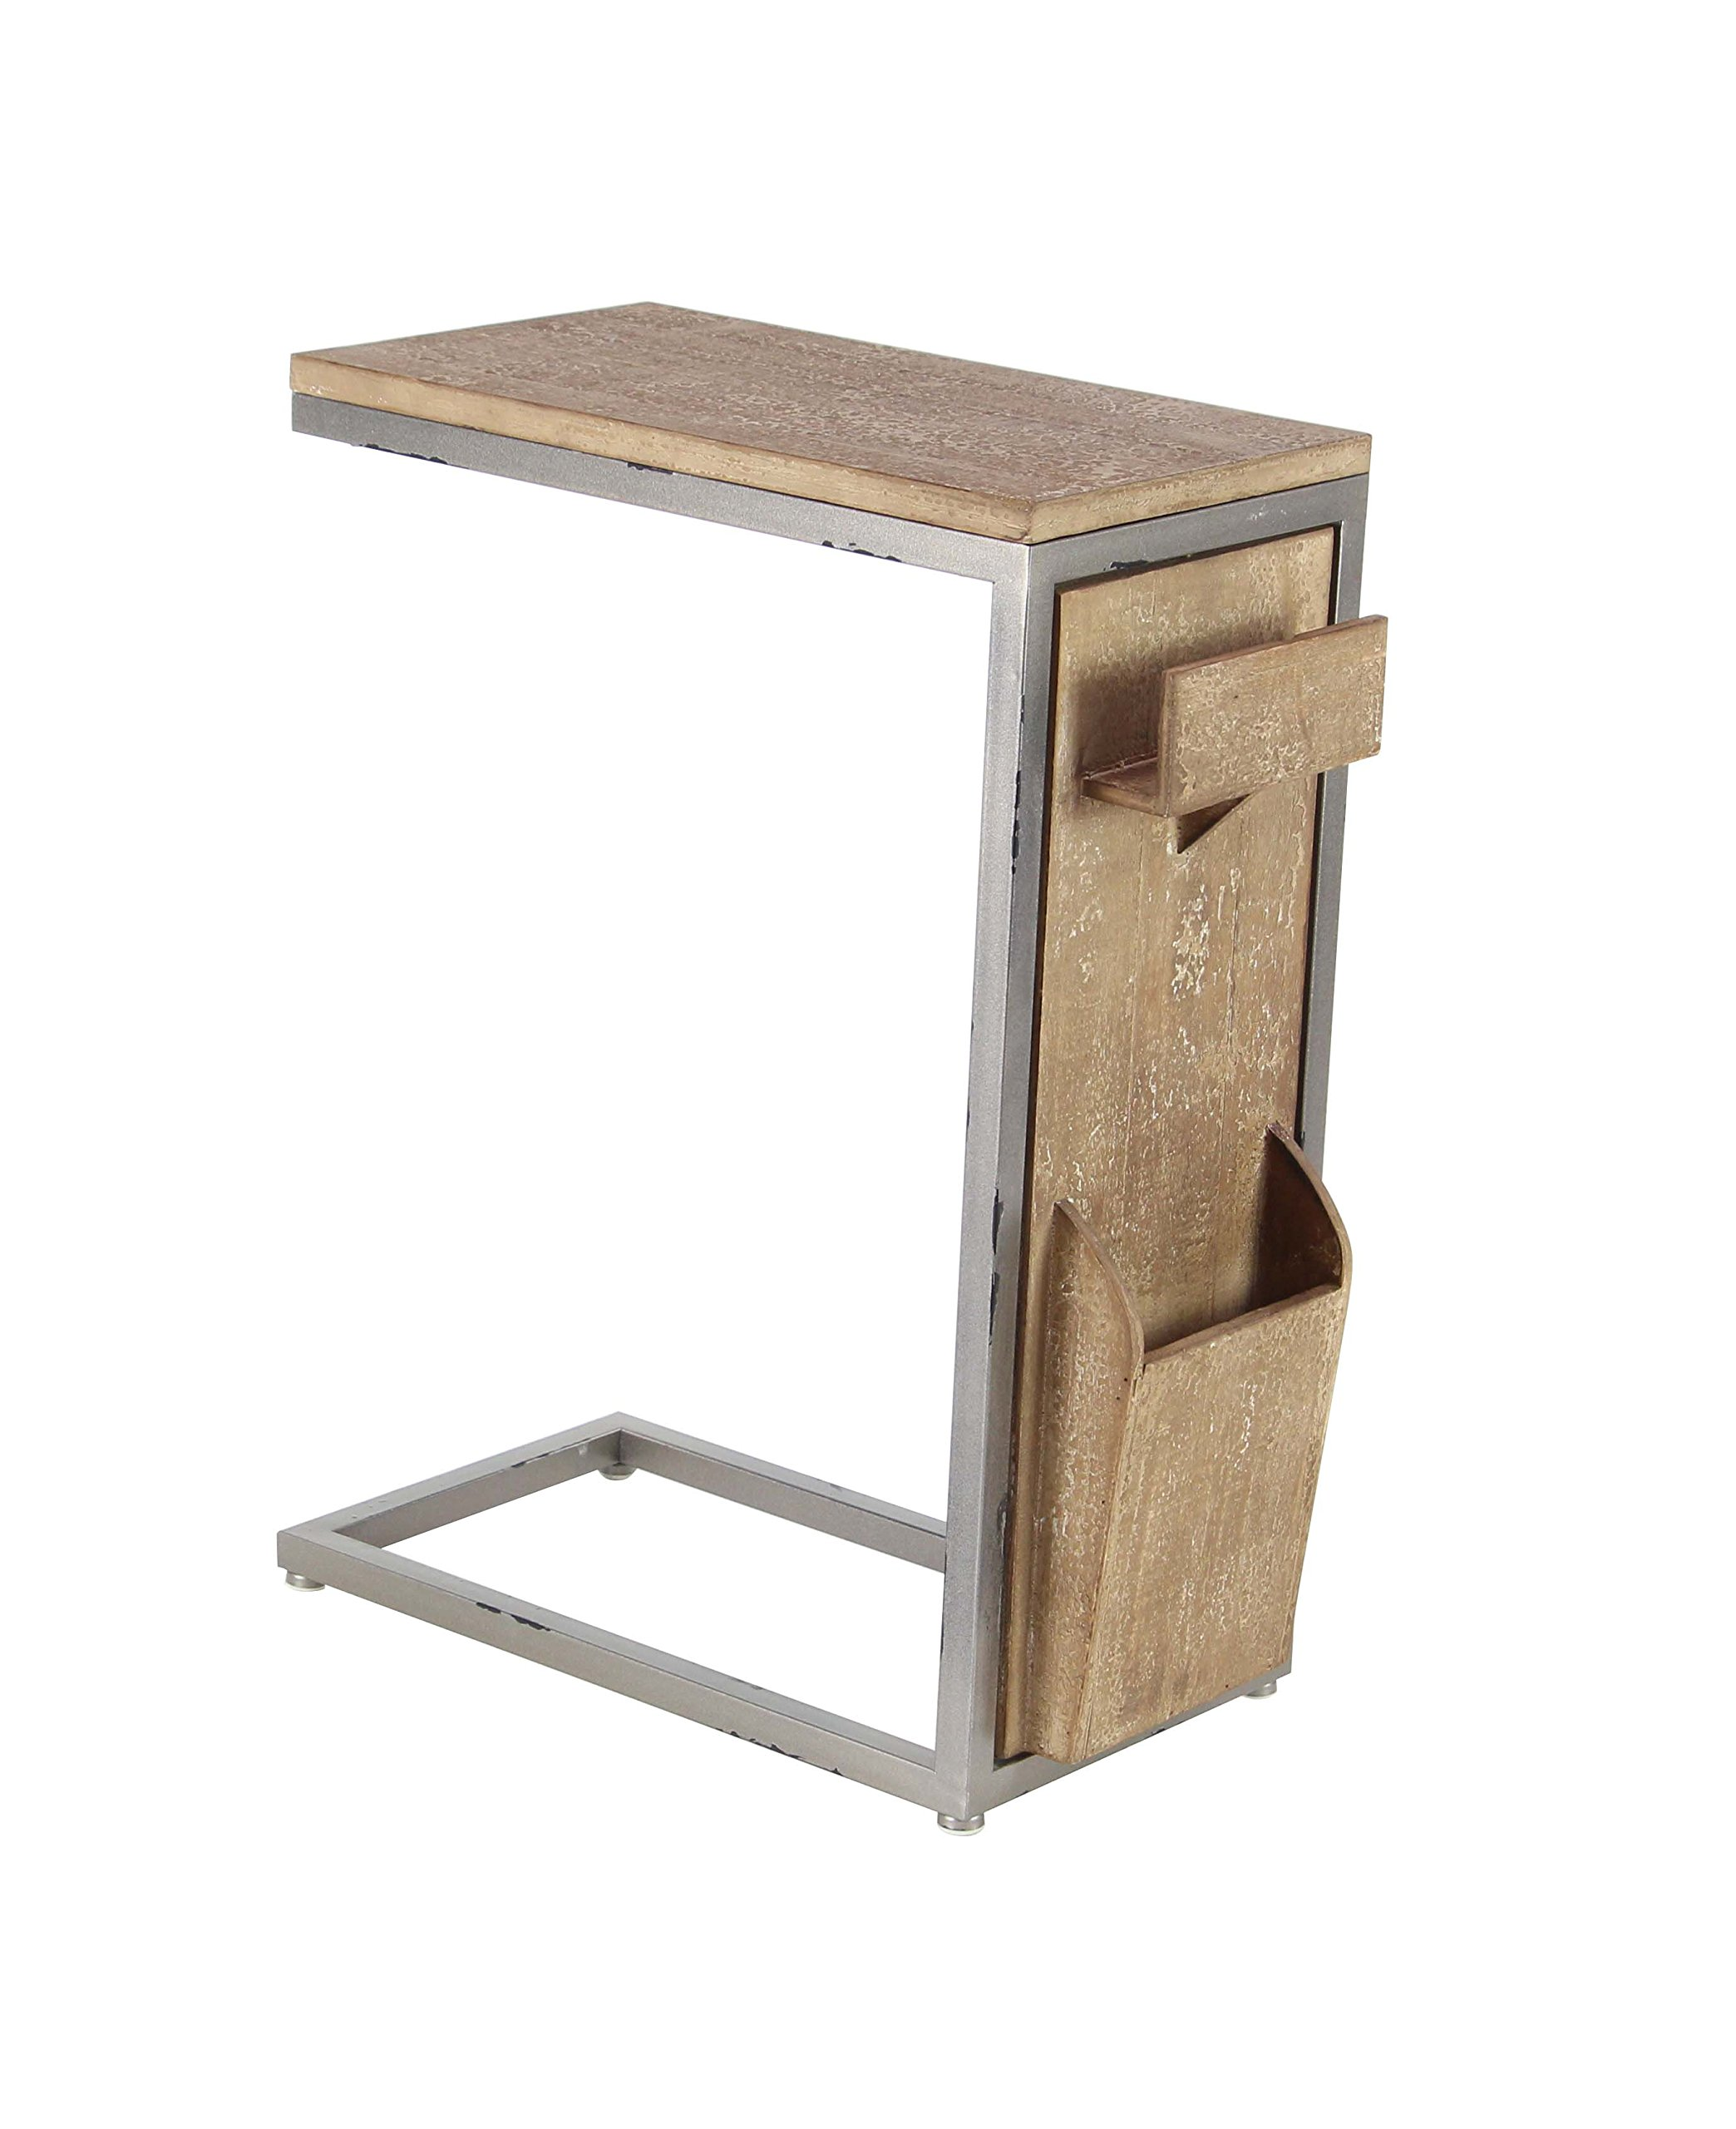 Deco 79 60198 Side Table, Light Brown/Gray